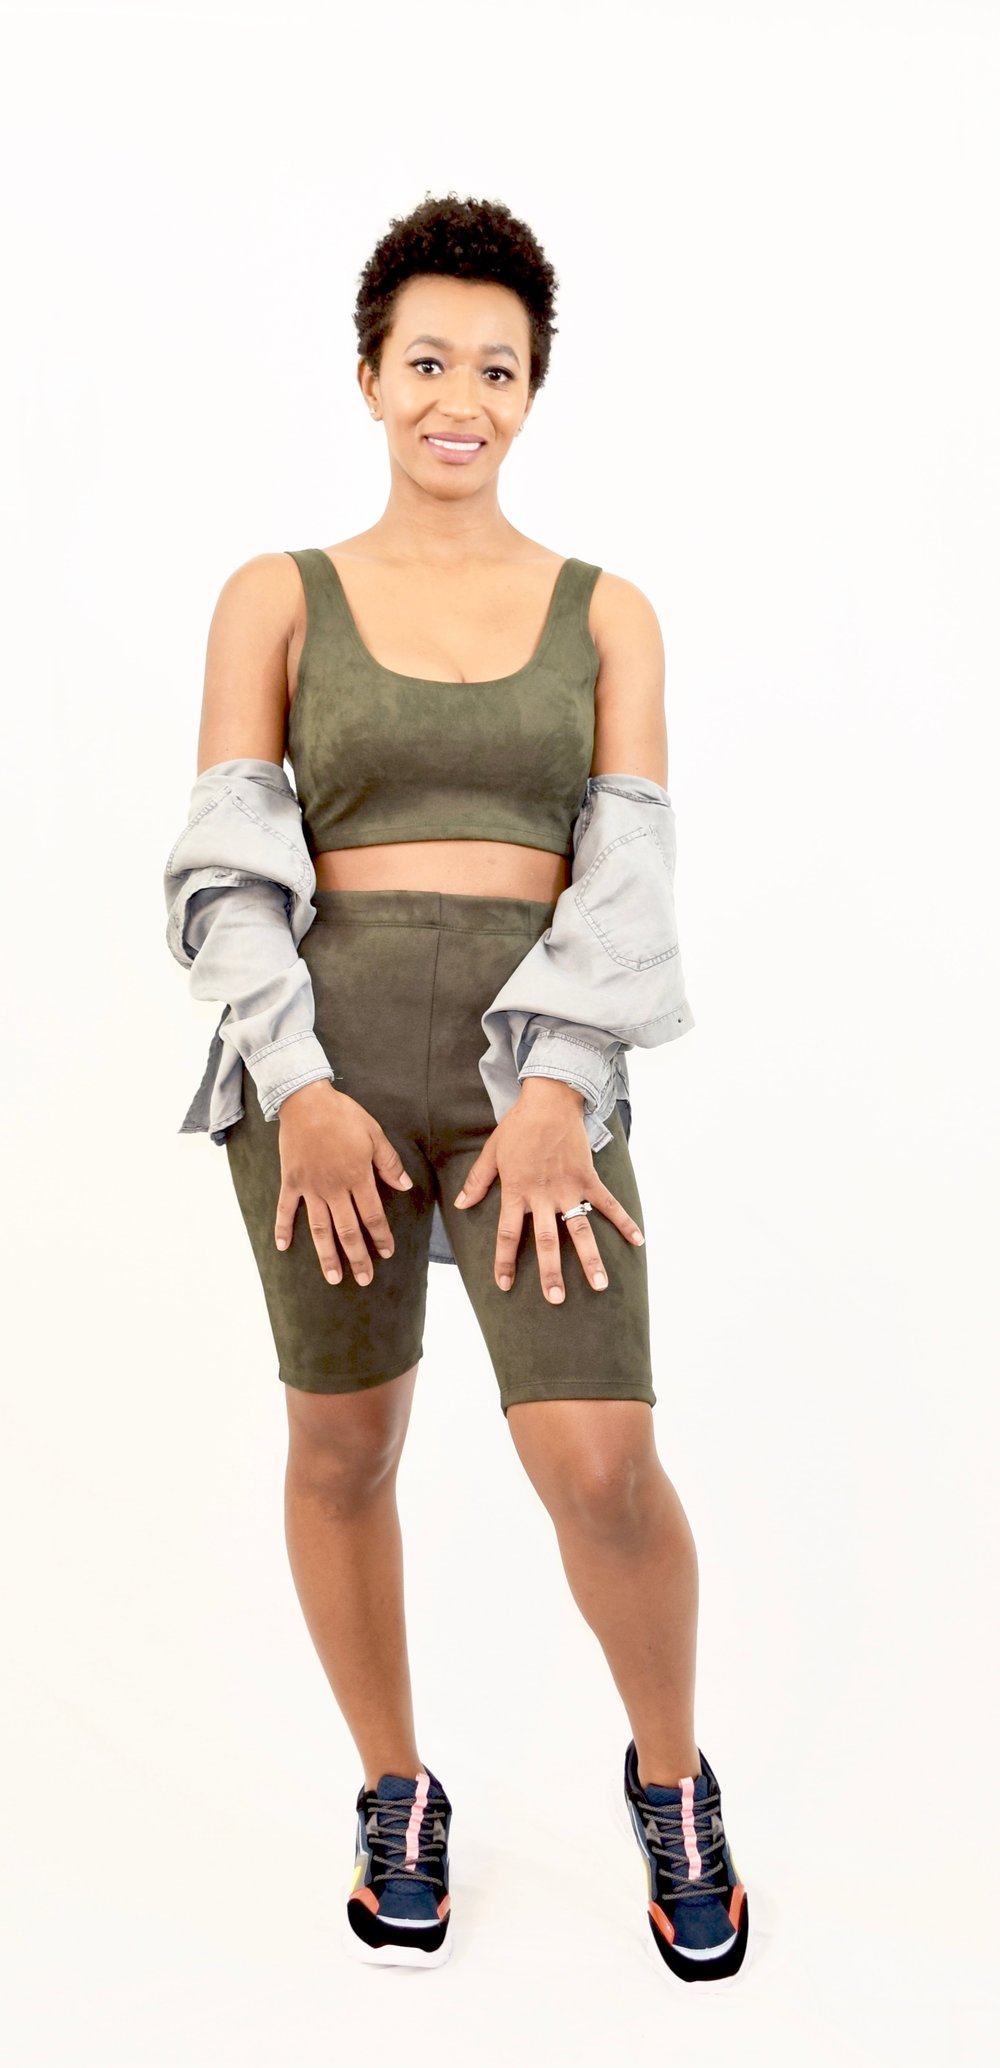 Suede Top and Biker Shorts Set - $29